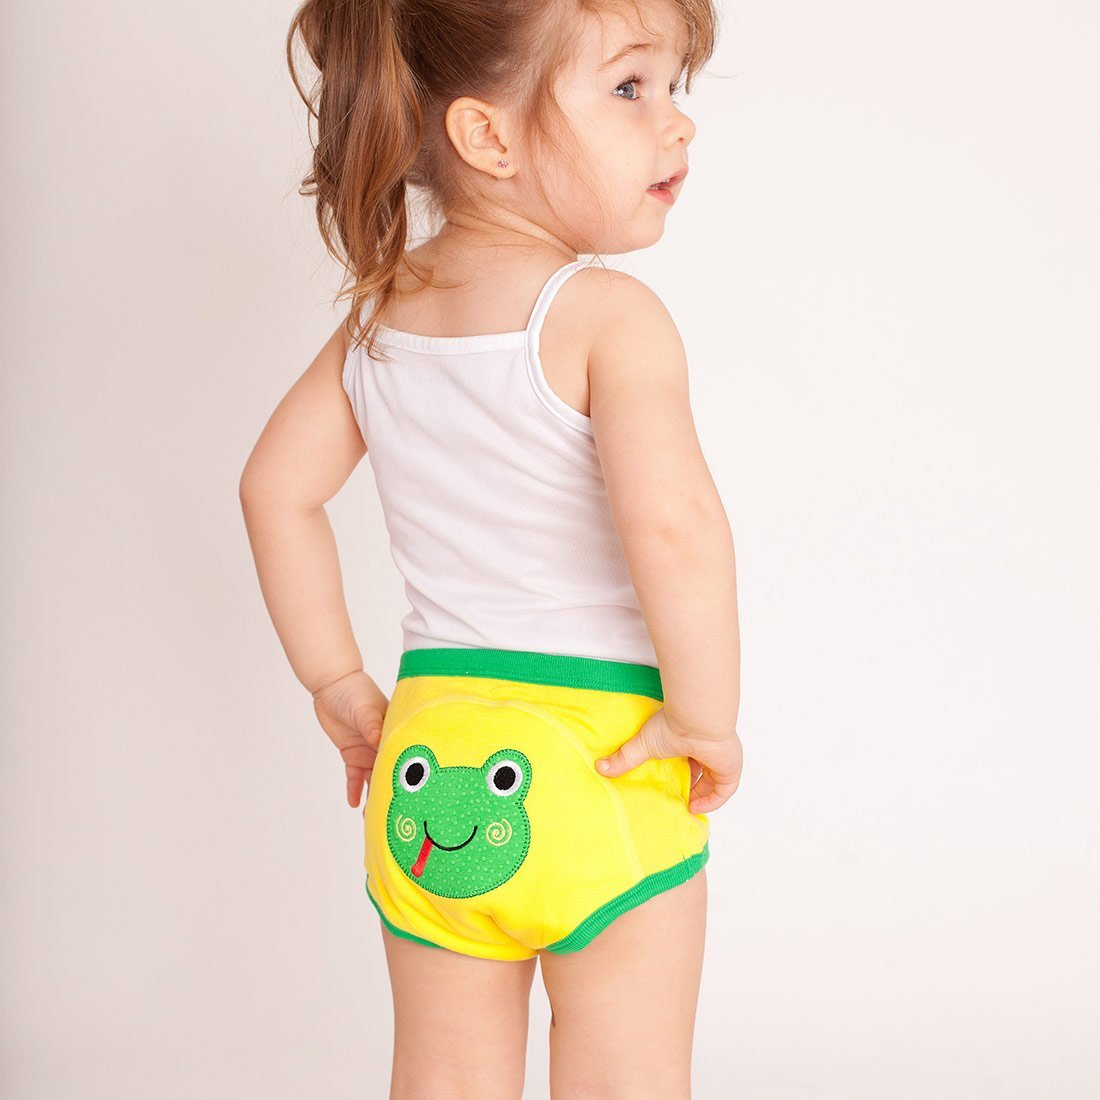 ZOOCCHINI 1 Piece Organic Potty Training Pant - Flippy the Frog-1